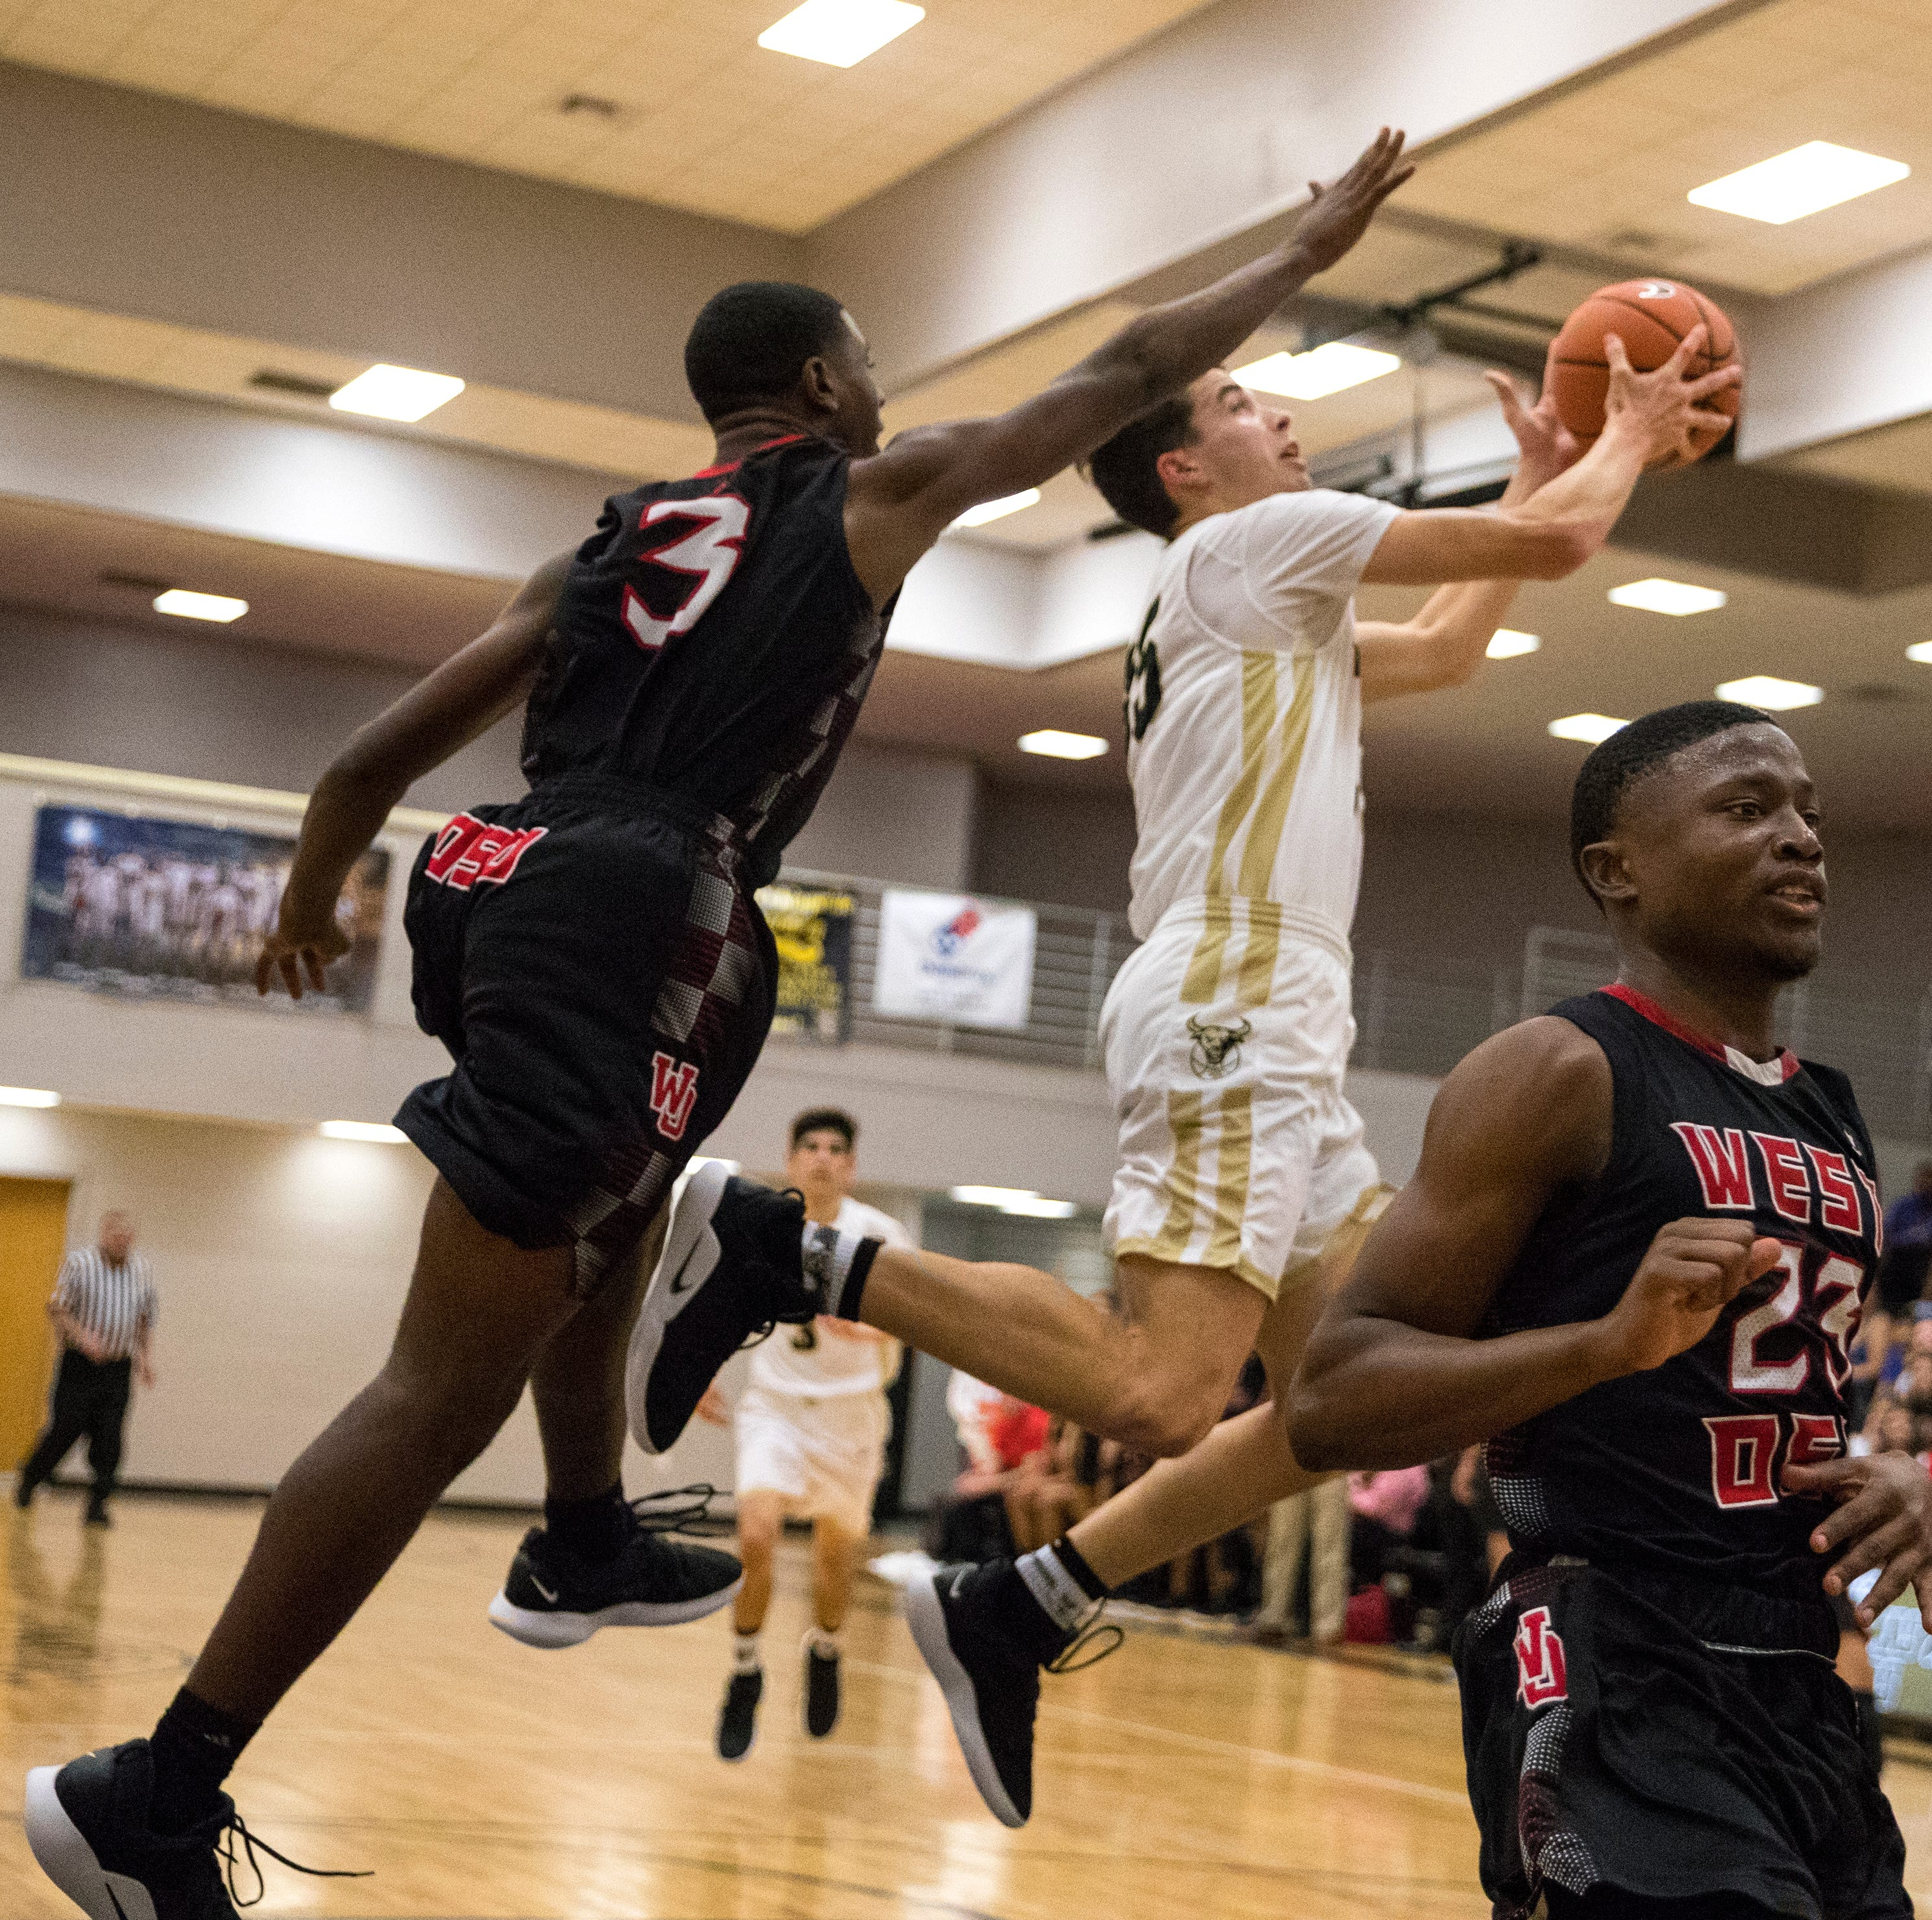 HIGH SCHOOL BASKETBALL REWIND: The latest Corpus Christi area rankings and games to watch